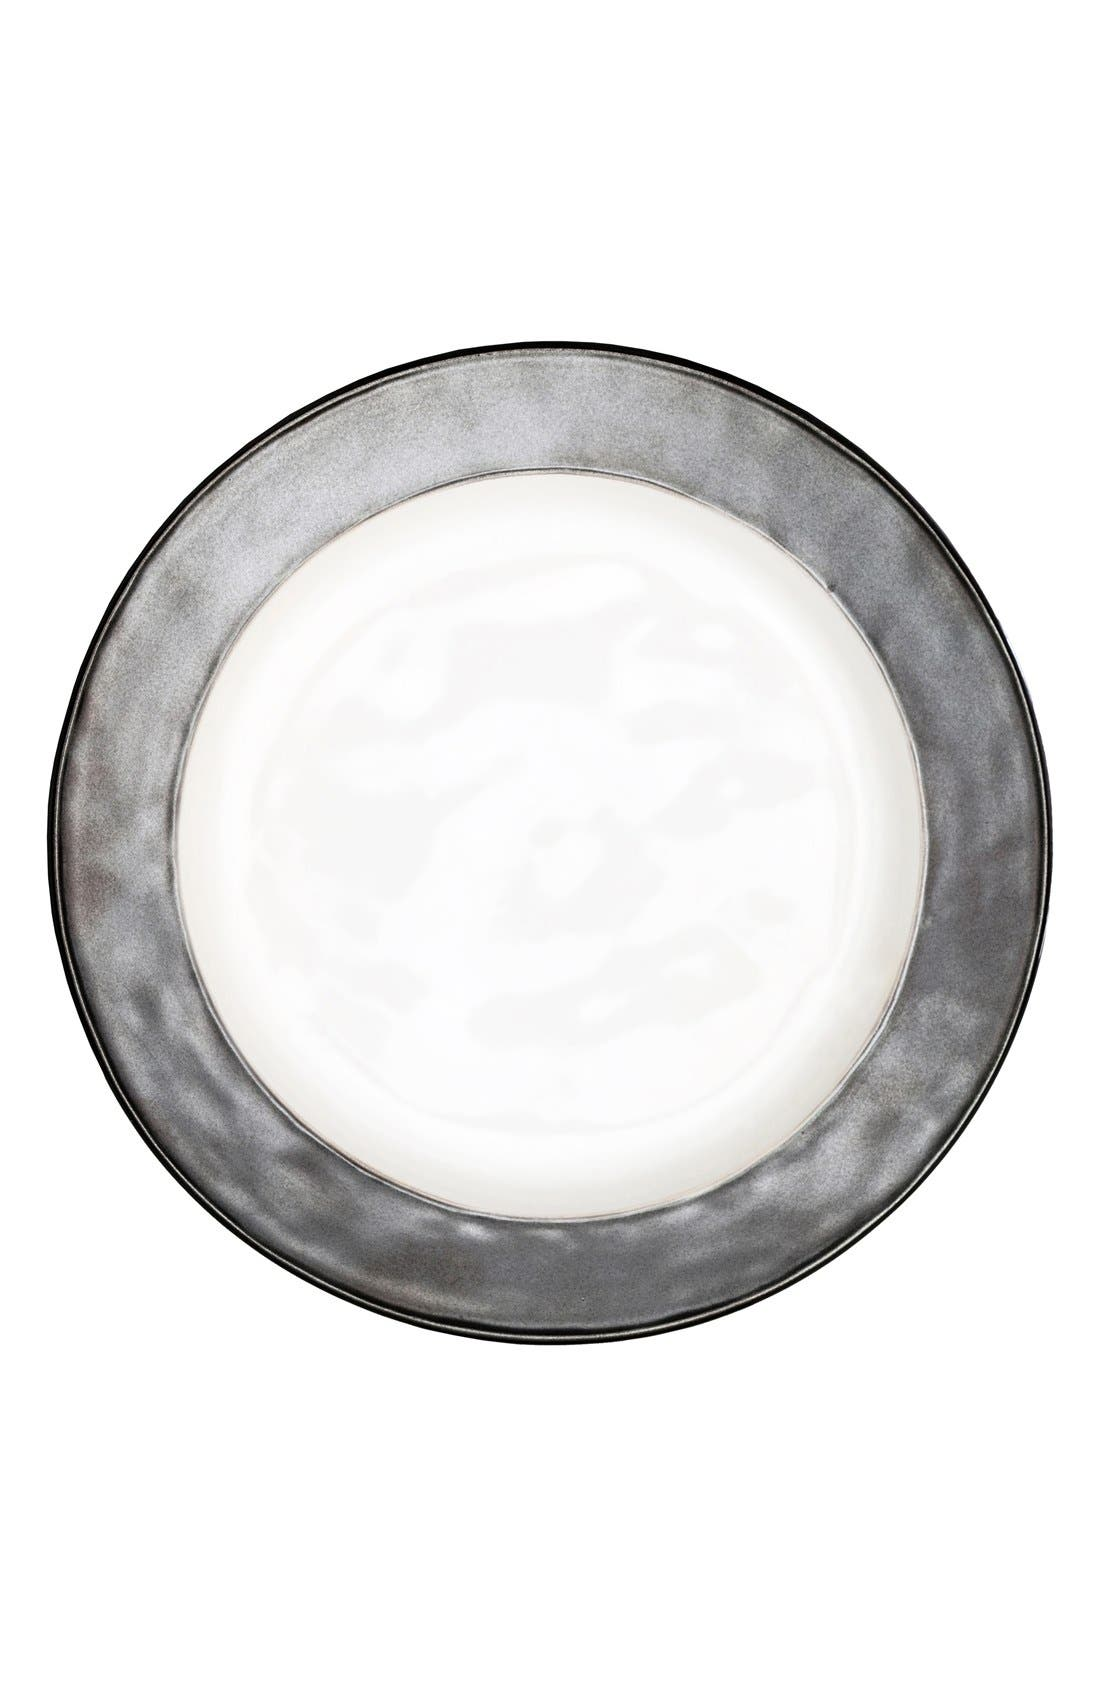 'Emerson' Dinner Plate,                         Main,                         color, Pewter/ White